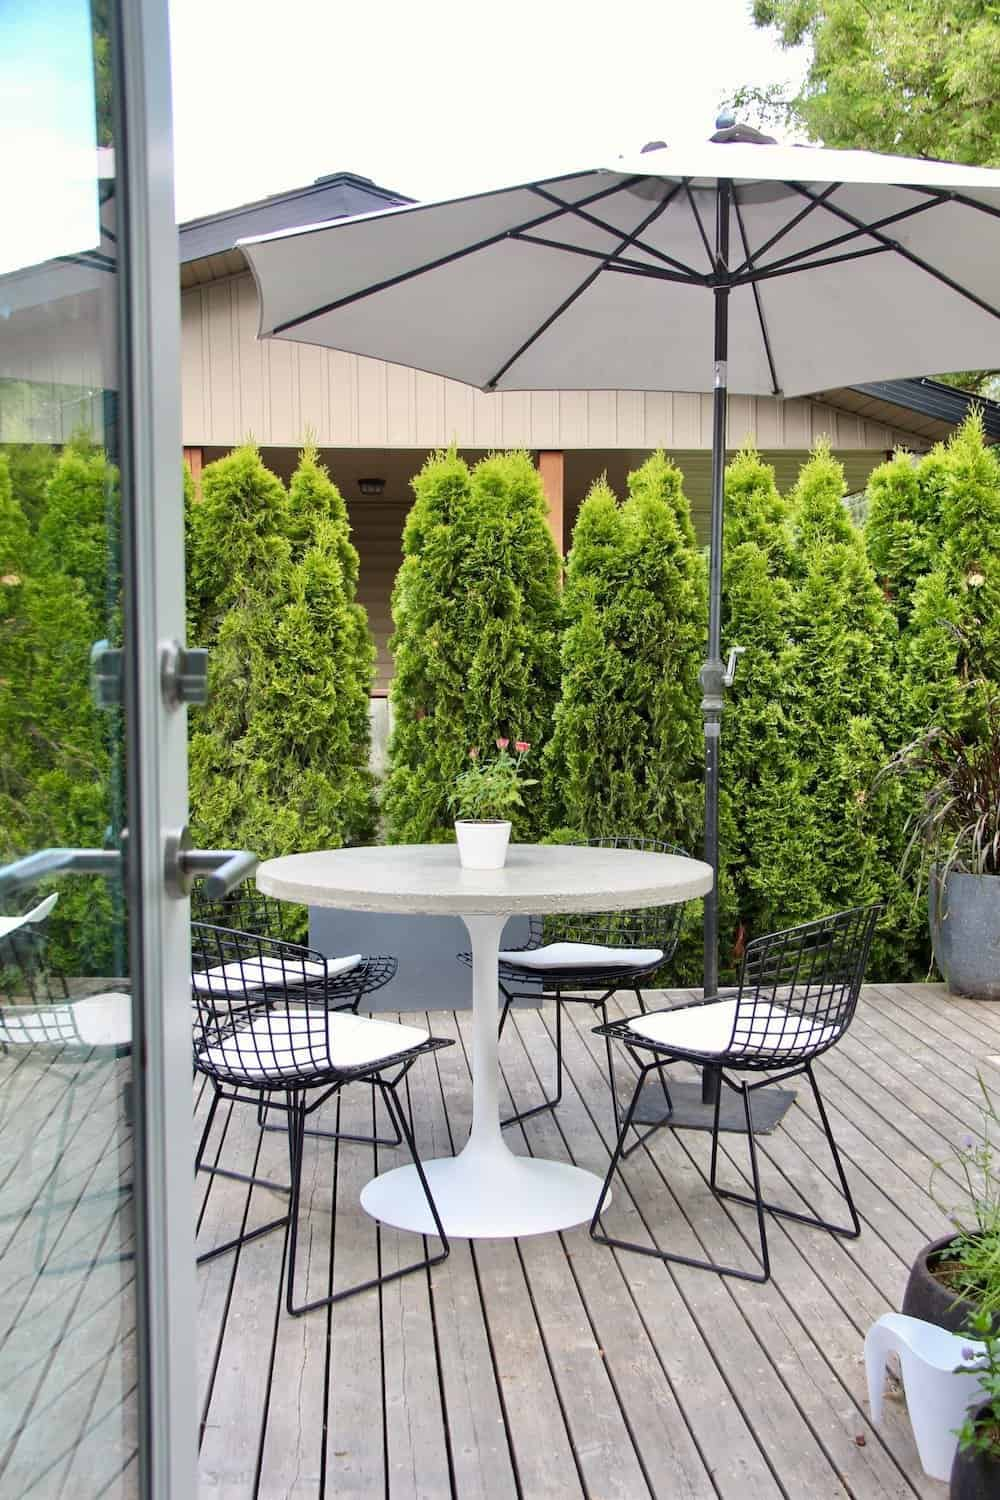 Concrete Dining Table A Diy Round Dining Table For Outdoors Or